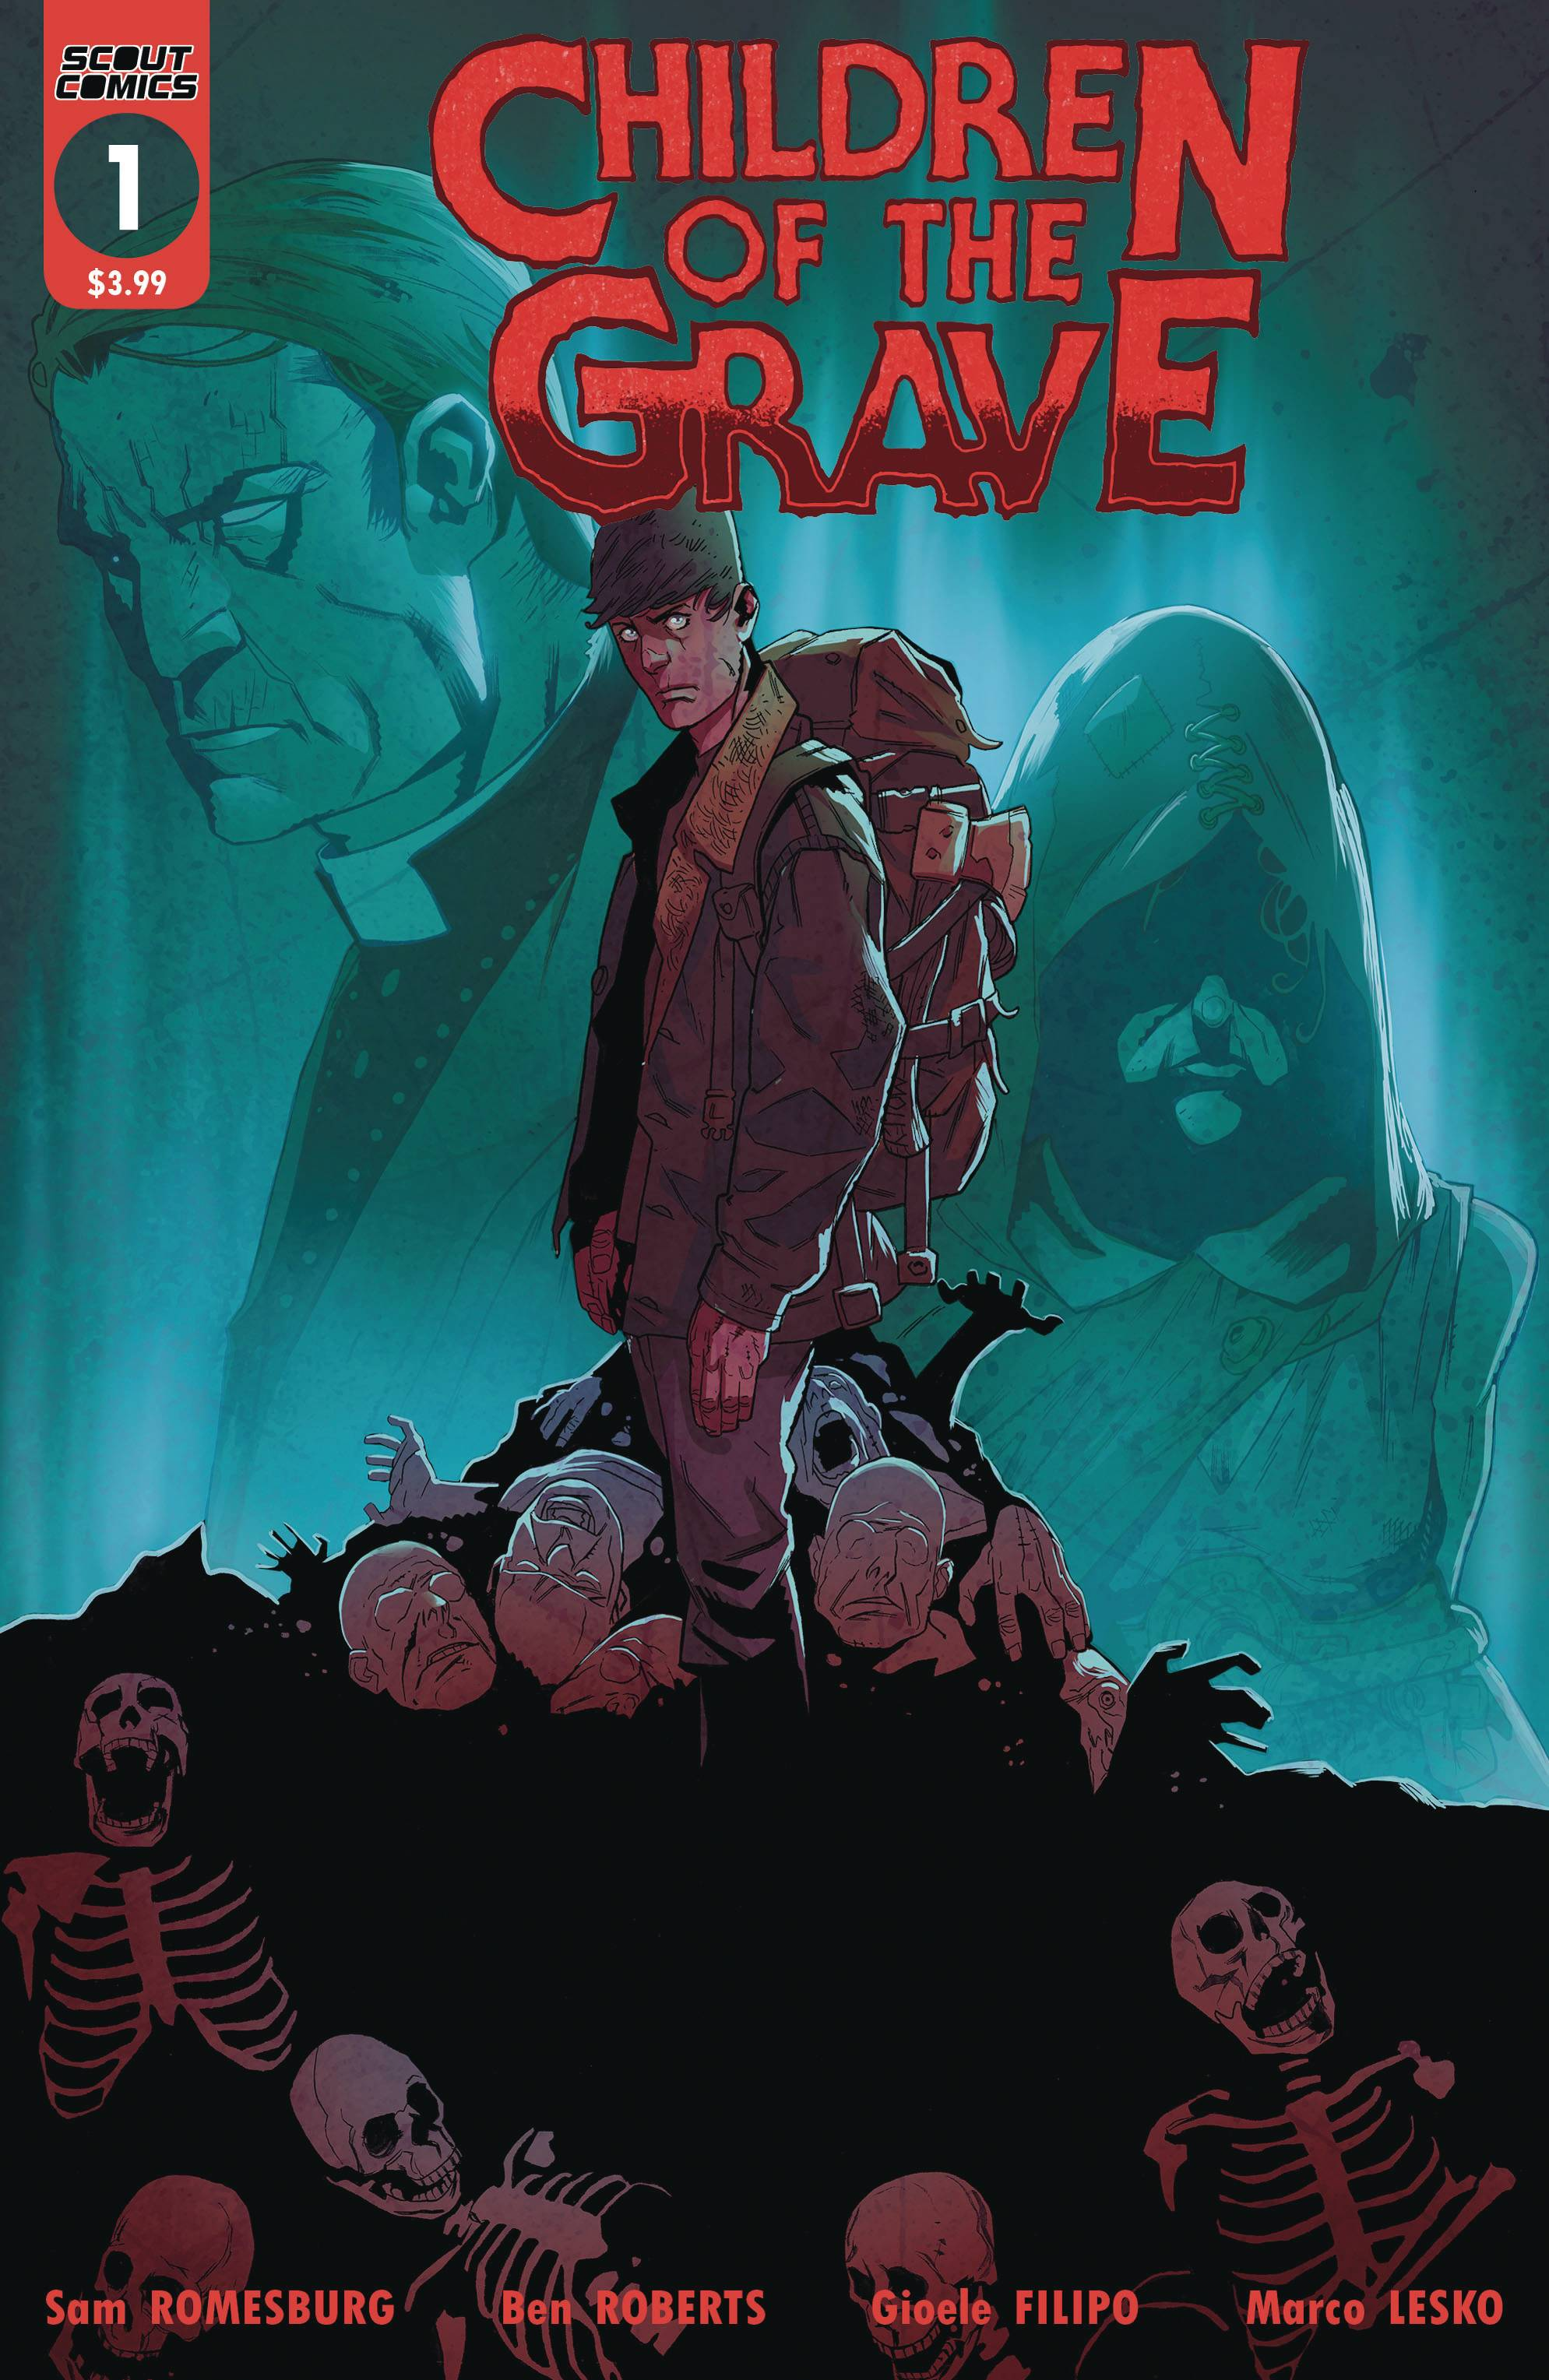 CHILDREN OF THE GRAVE #1